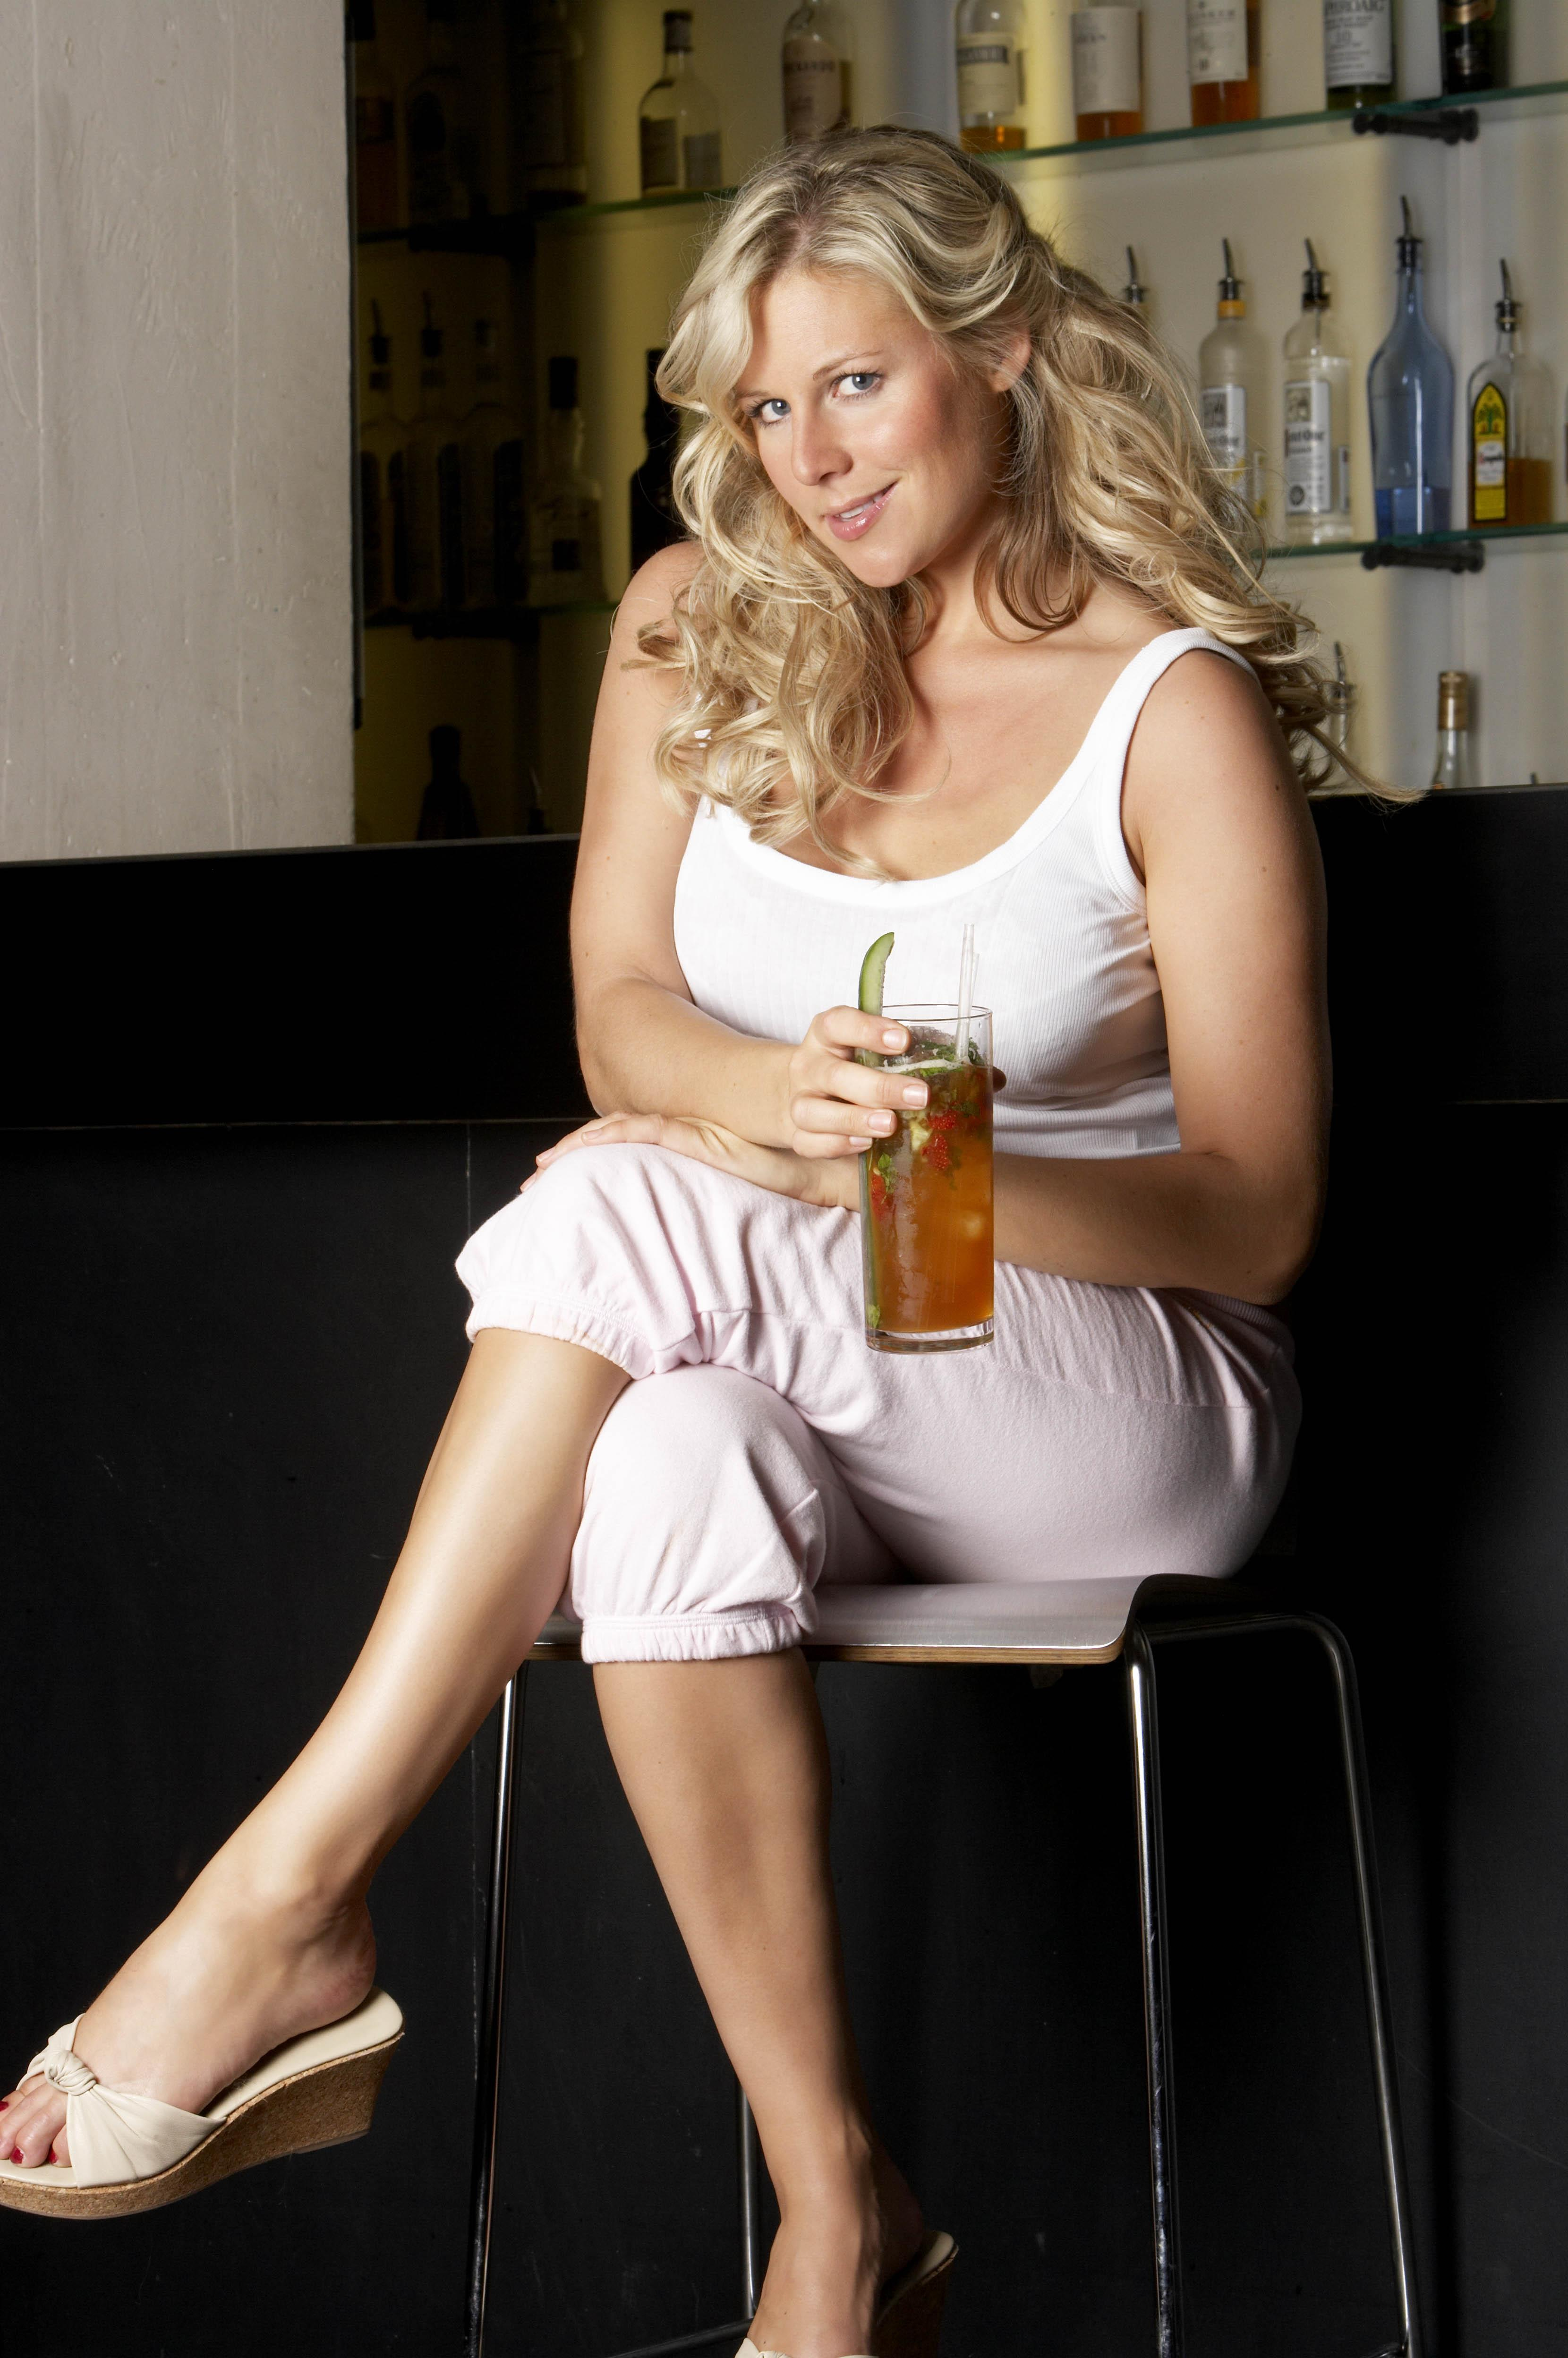 Abi Titmuss Nude - 40 Pictures: Rating 9.26/10